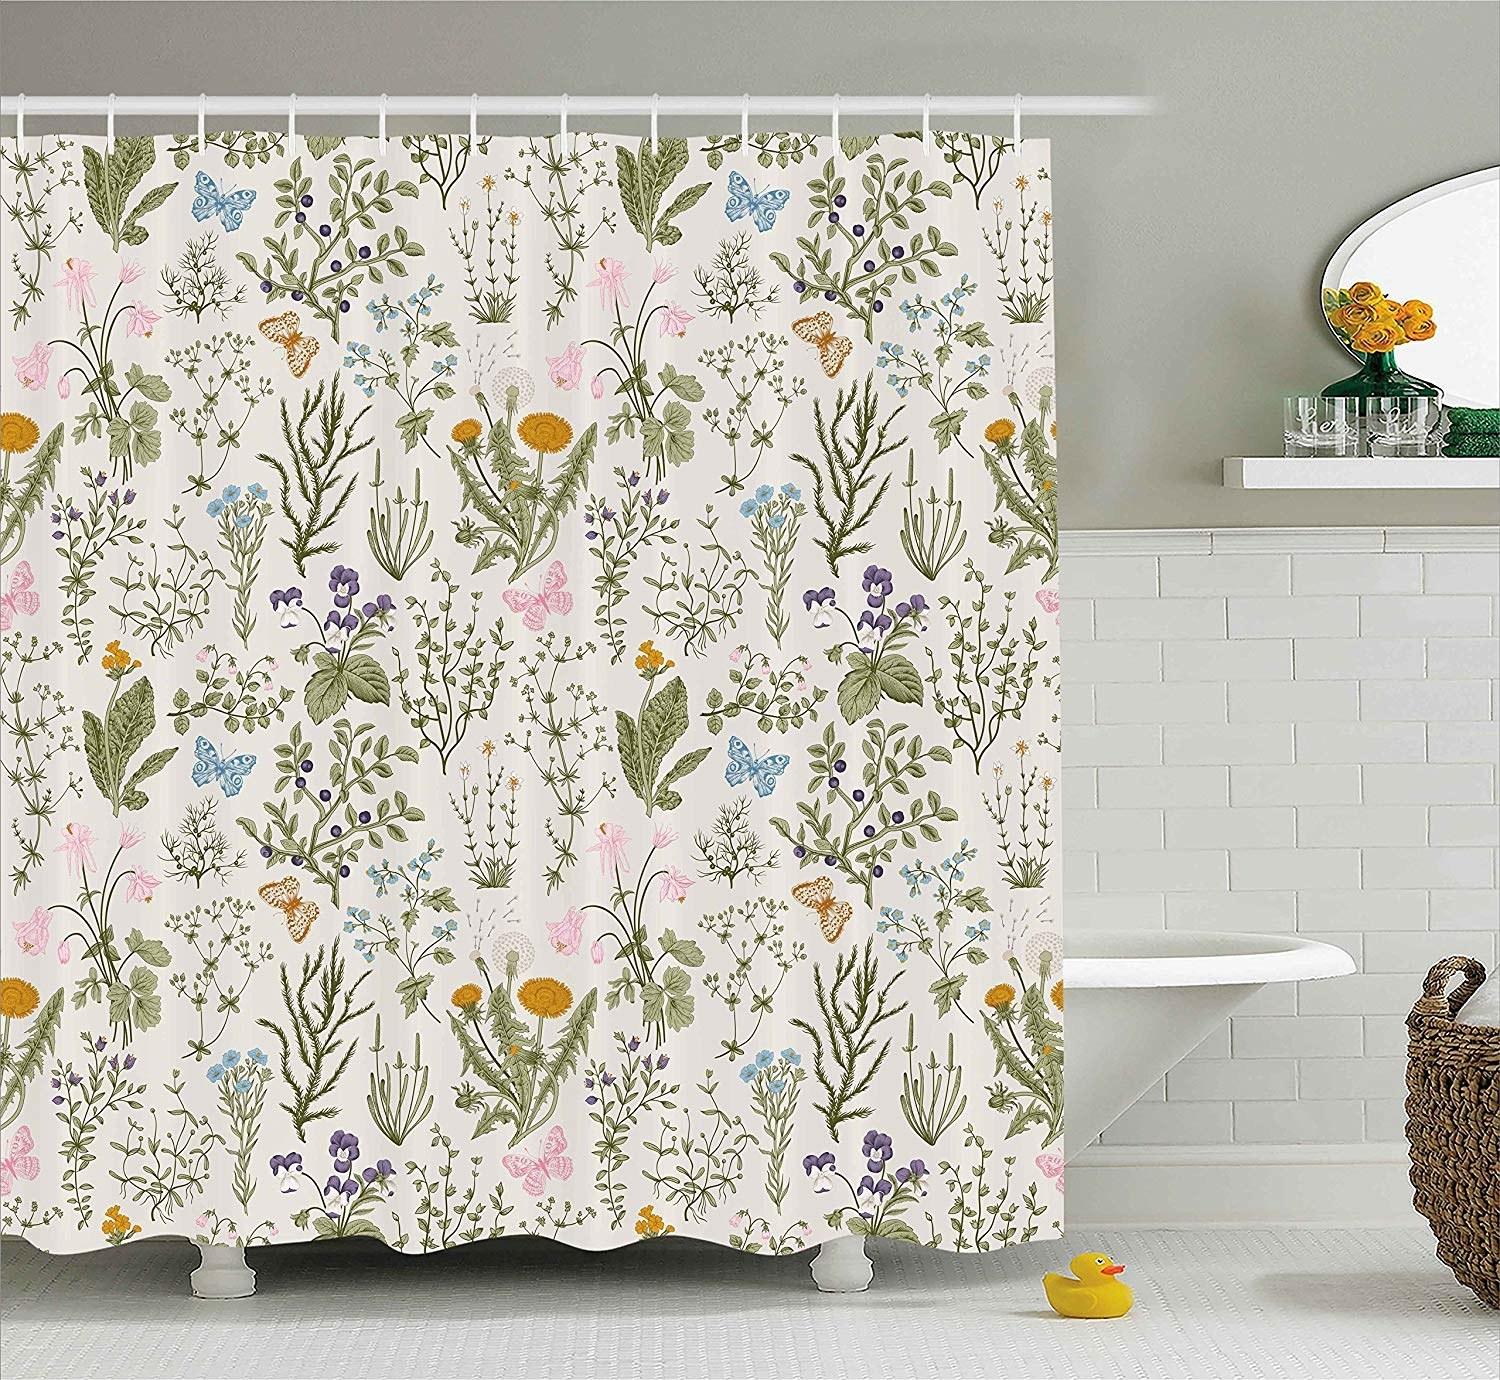 the off-white shower curtain featuring butterflies, leaves, berries, and flowers